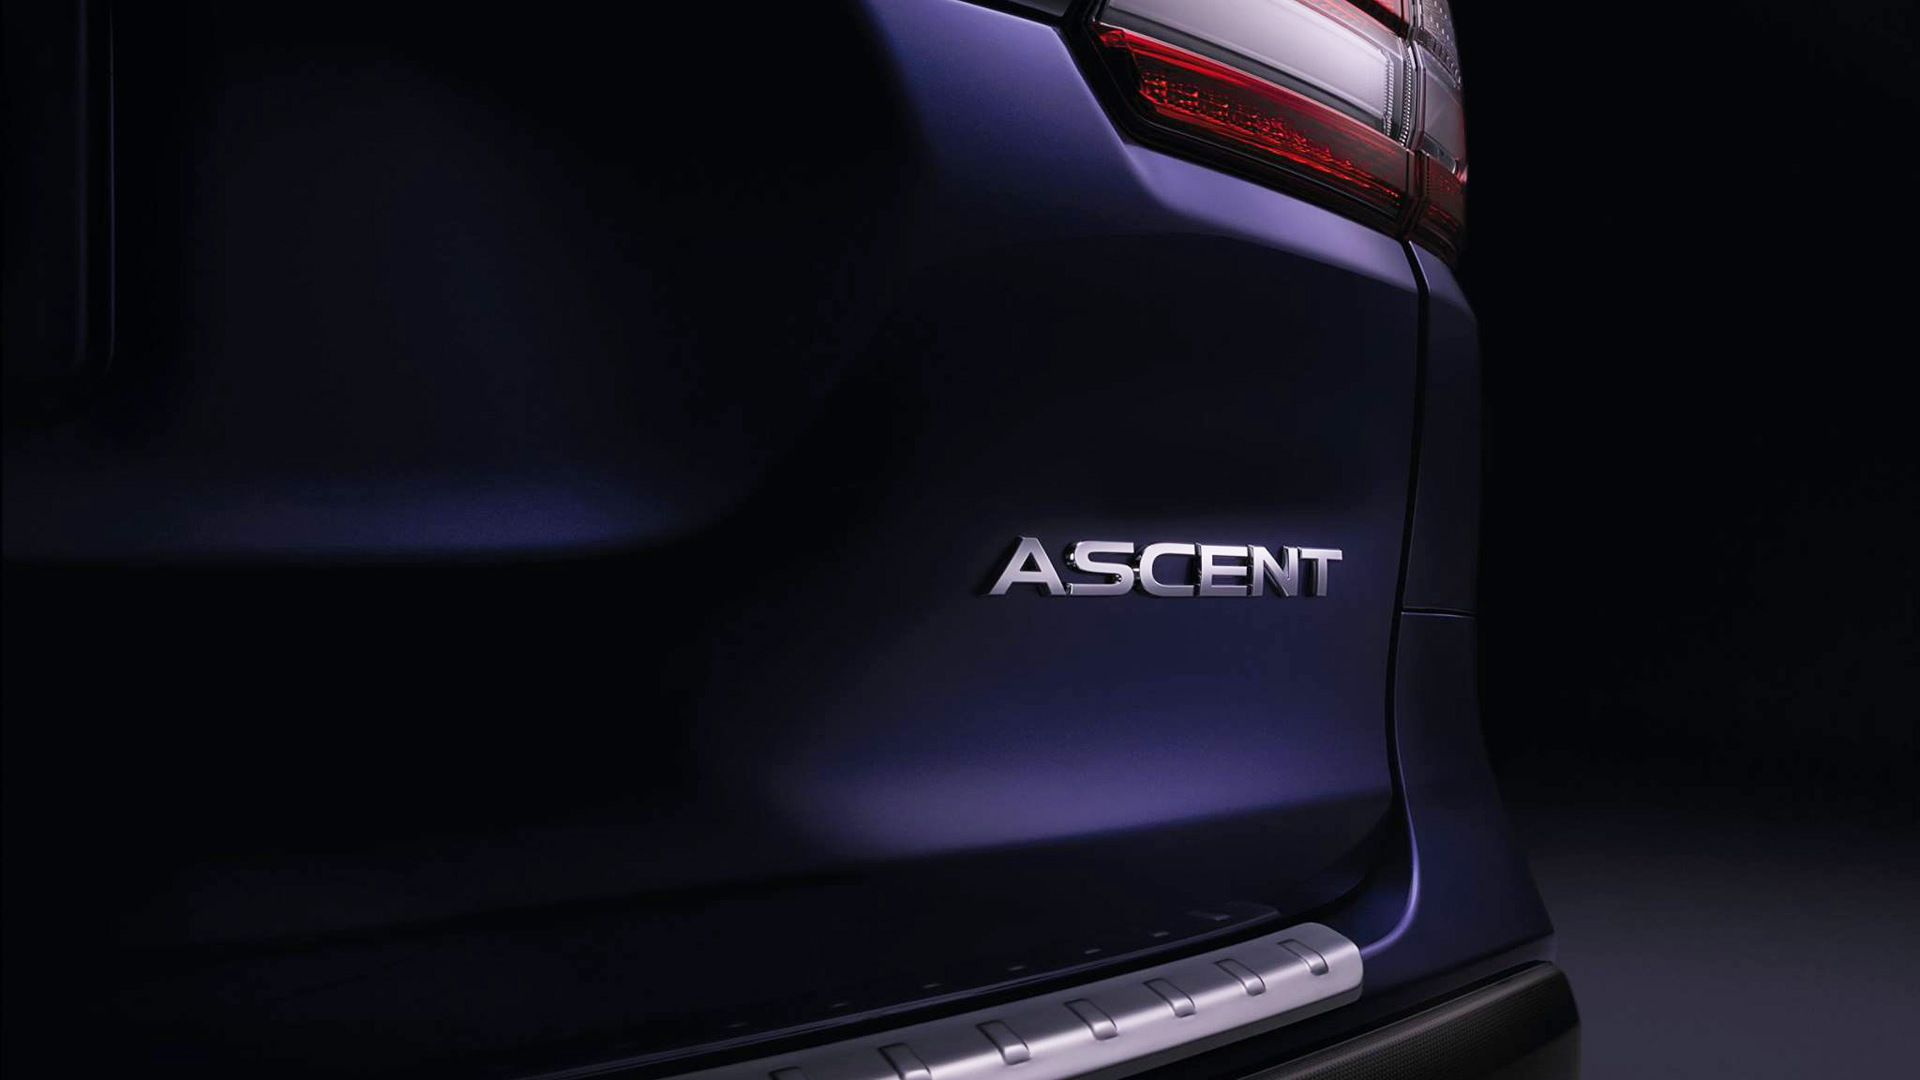 Teaser for 2019 Subaru Ascent debuting at 2017 Los Angeles Auto Show